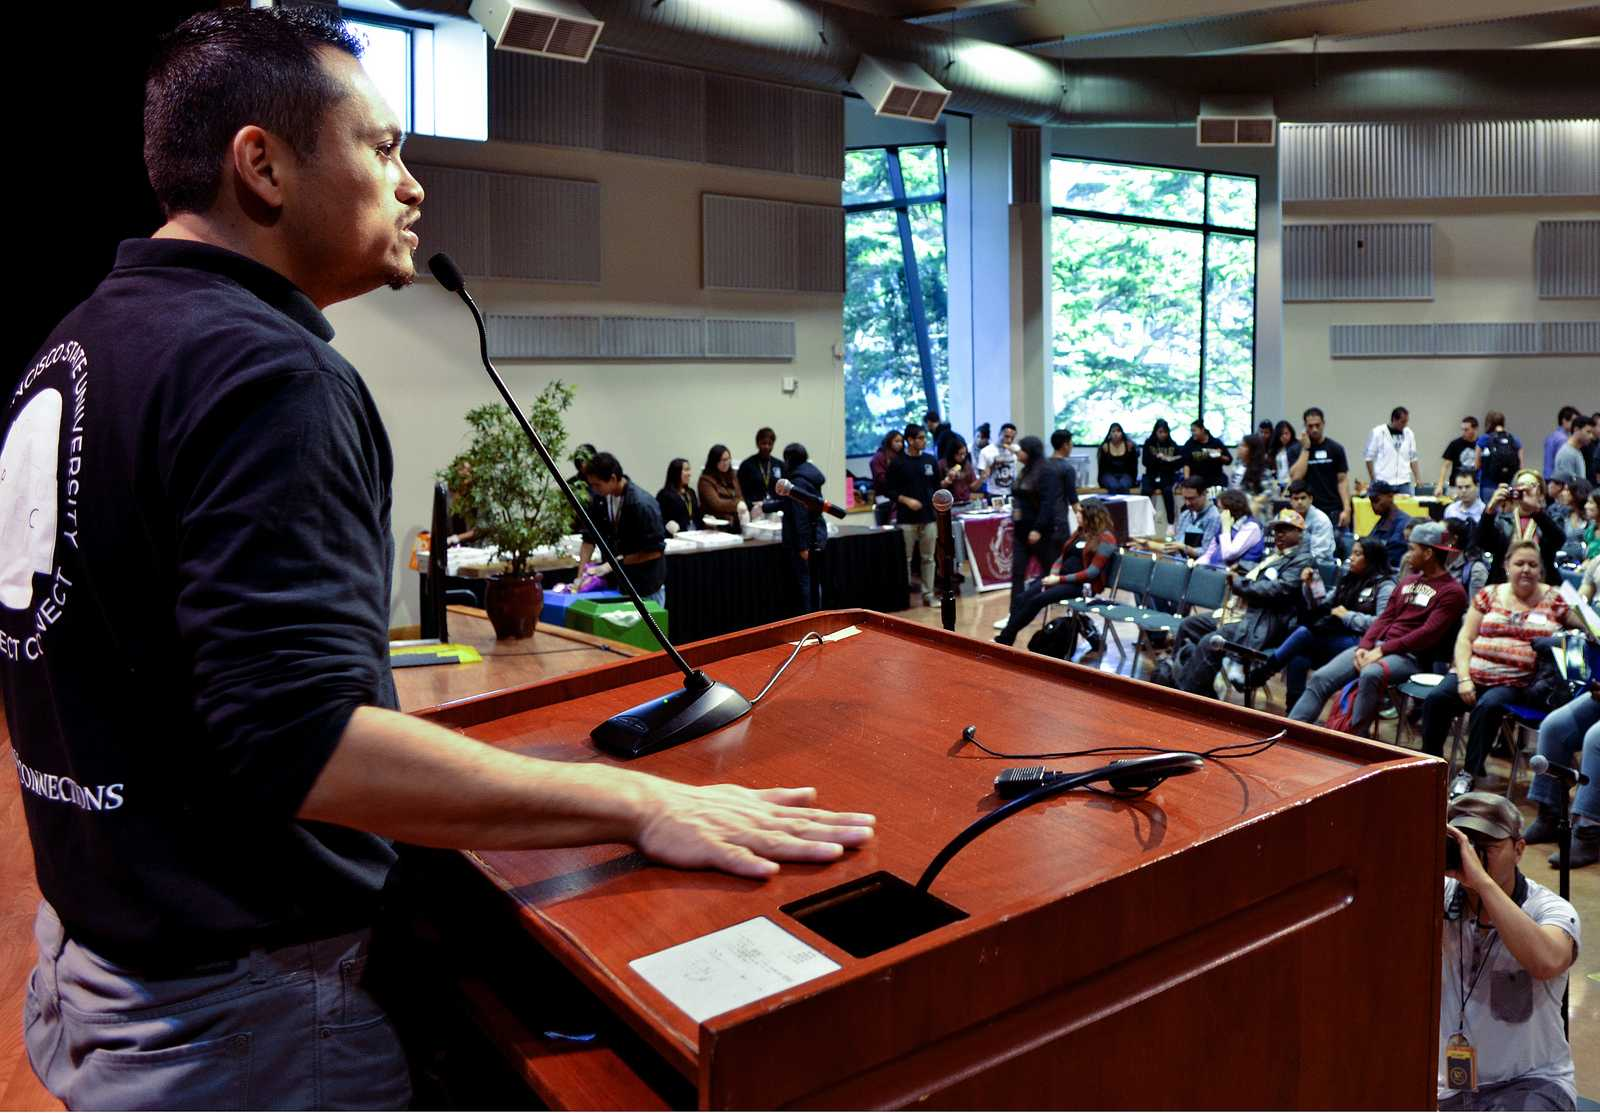 Mario Flores, the director of ASI's(Associated Students, Inc.) Project Connect speaks to students about the day's workshops held to help inform them about transferring to SF State, at the main event held in Jack Adams Hall, Wednesday, Nov. 6, 2013. Students came from different community colleges around the Bay Area to visit SF State for Transfer Day.  Photo by Amanda Peterson / Xpress